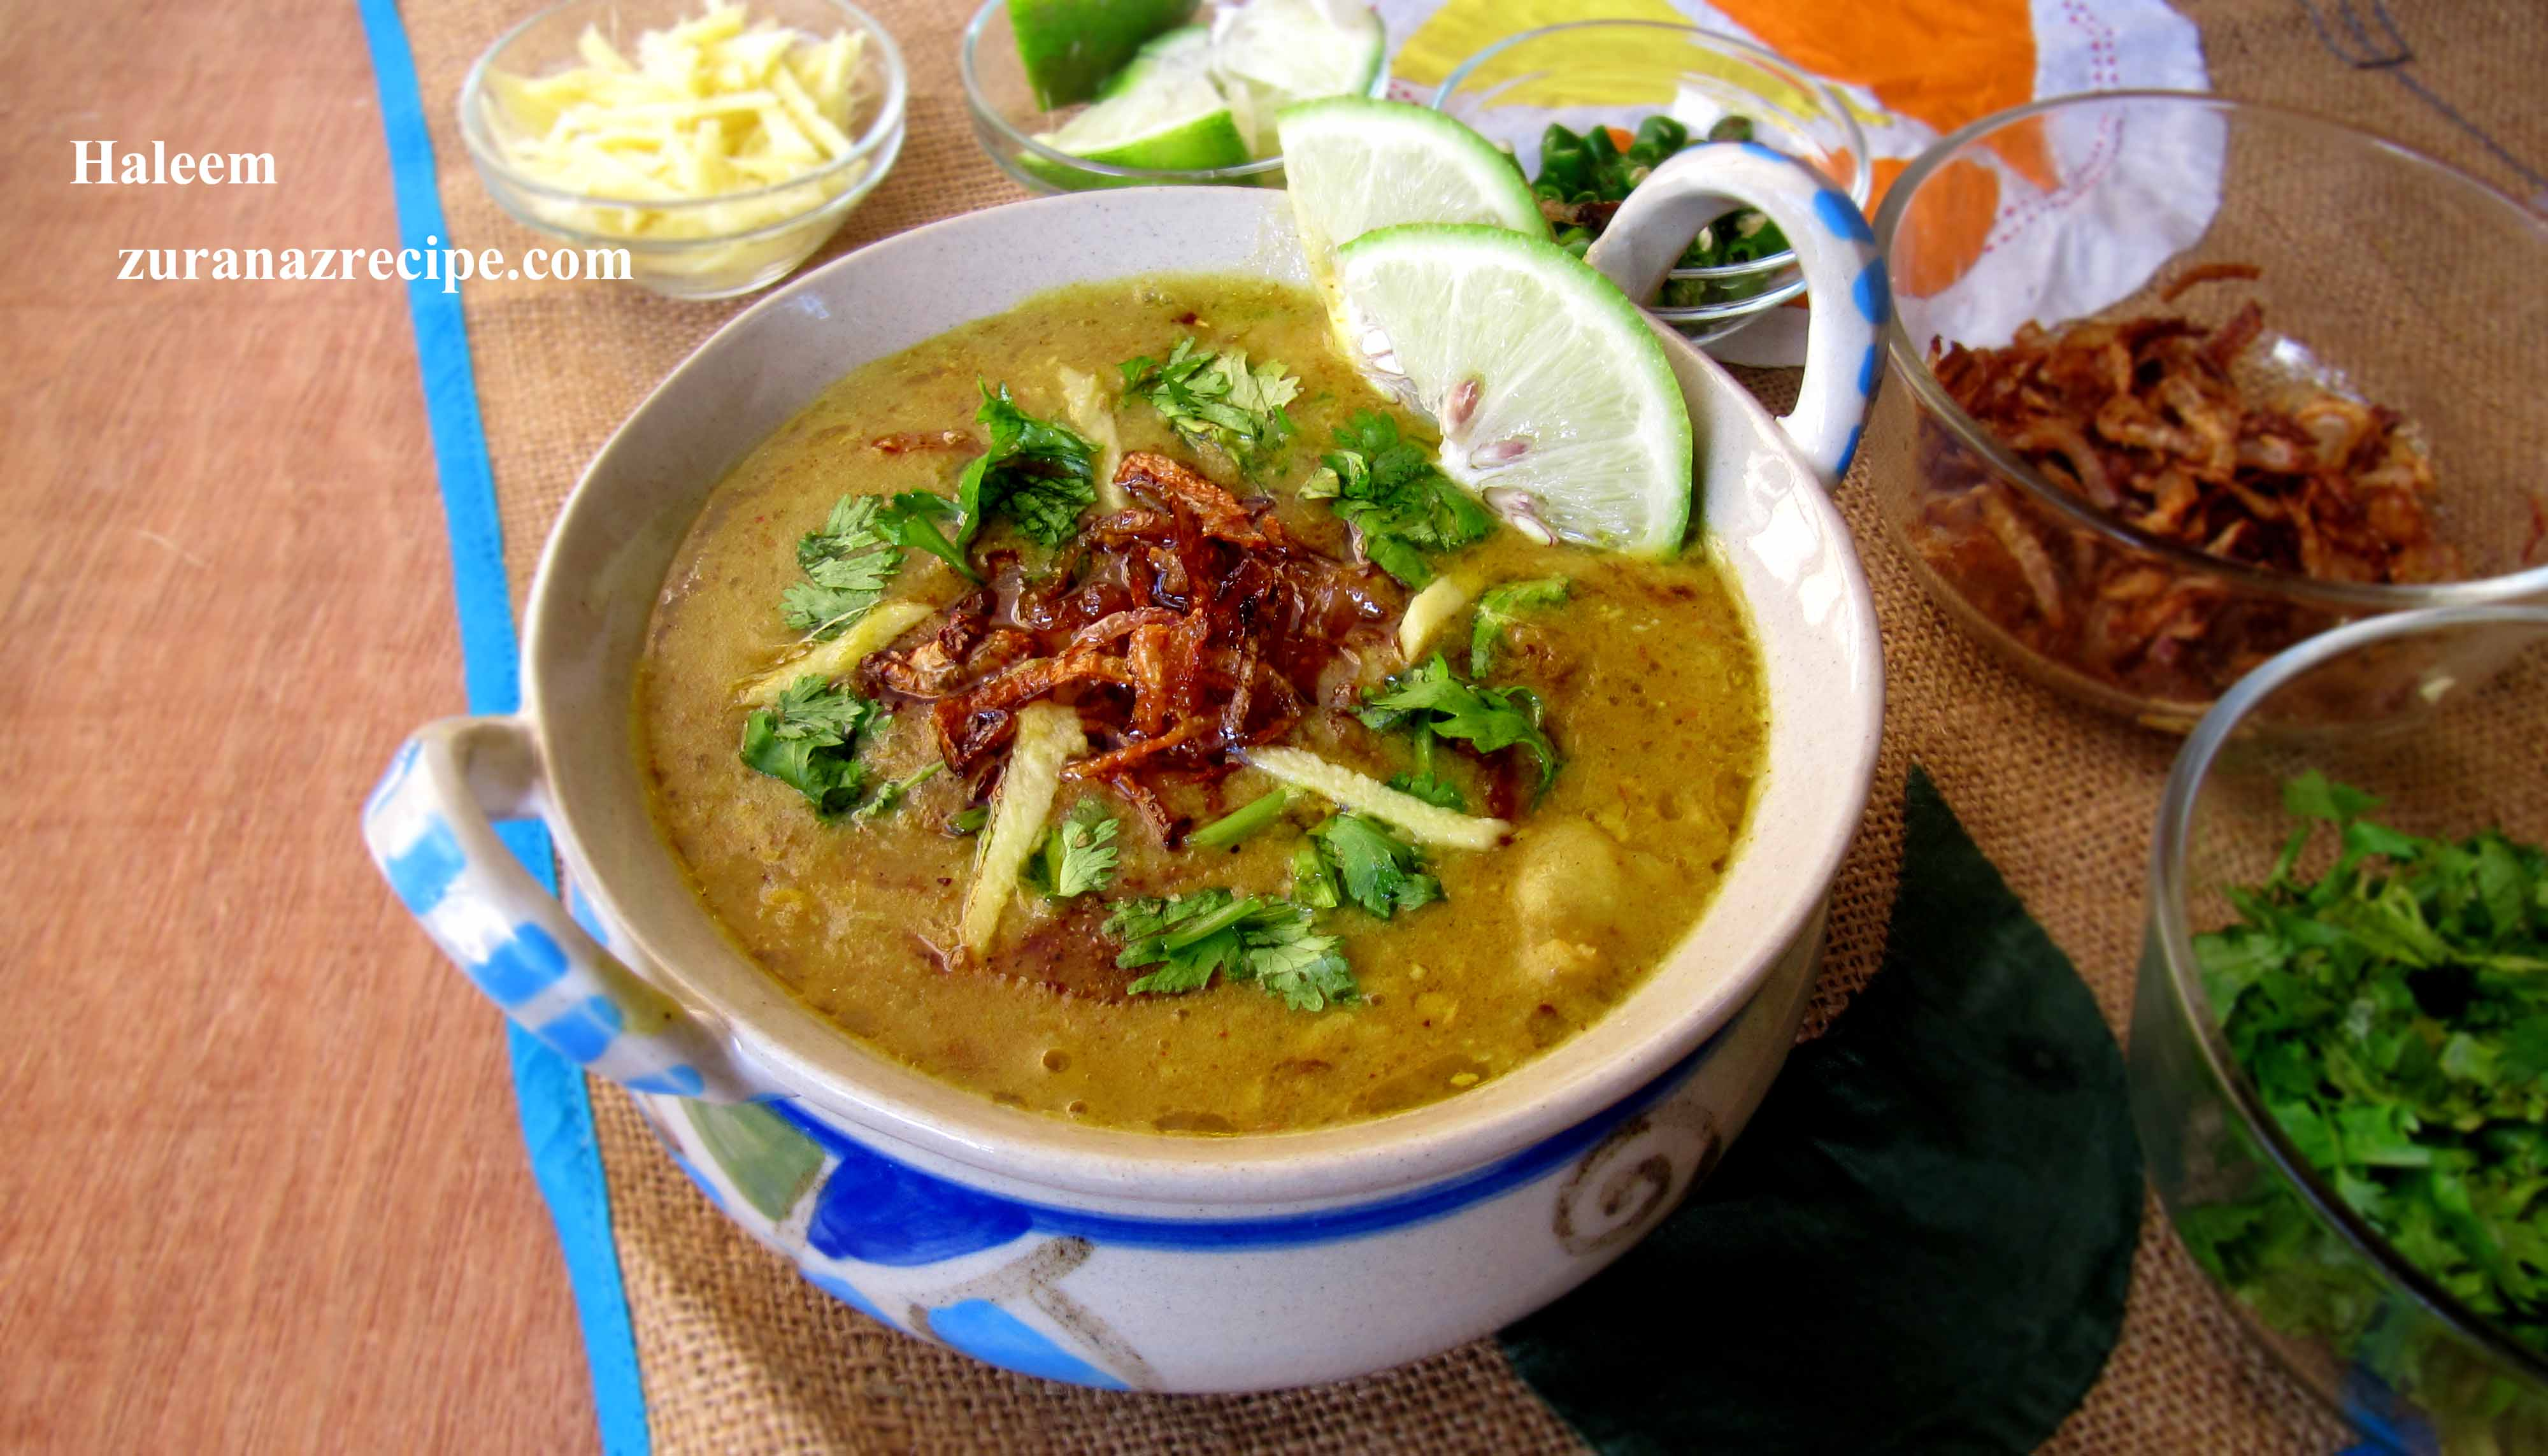 Haleem/How to make & serve haleem in Bangladesh